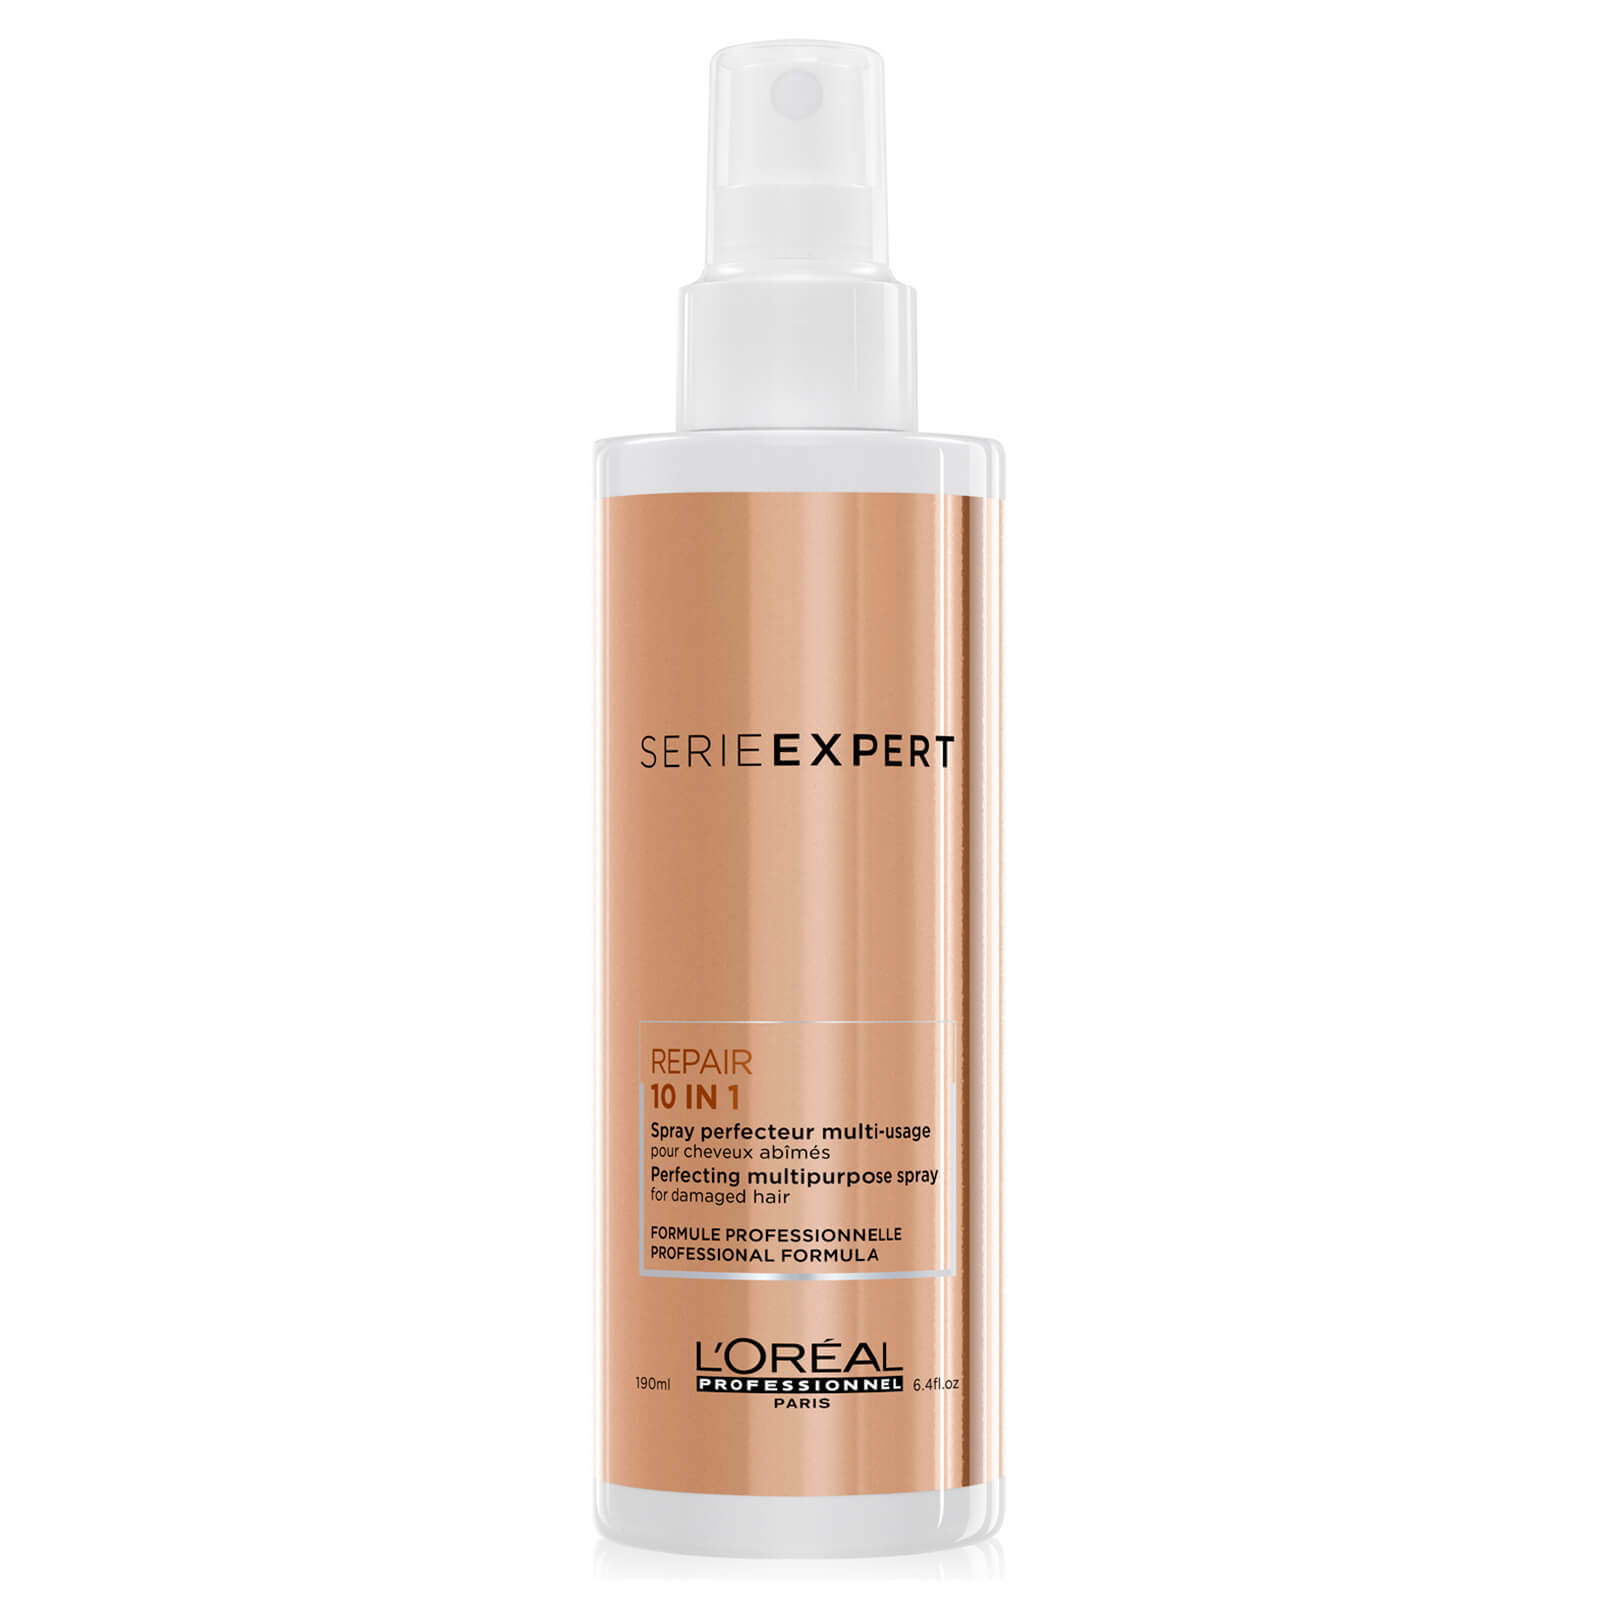 L'Oréal Expert Absolut Repair Gold Quinoa + Protein sprej 10 in 1 190 ml